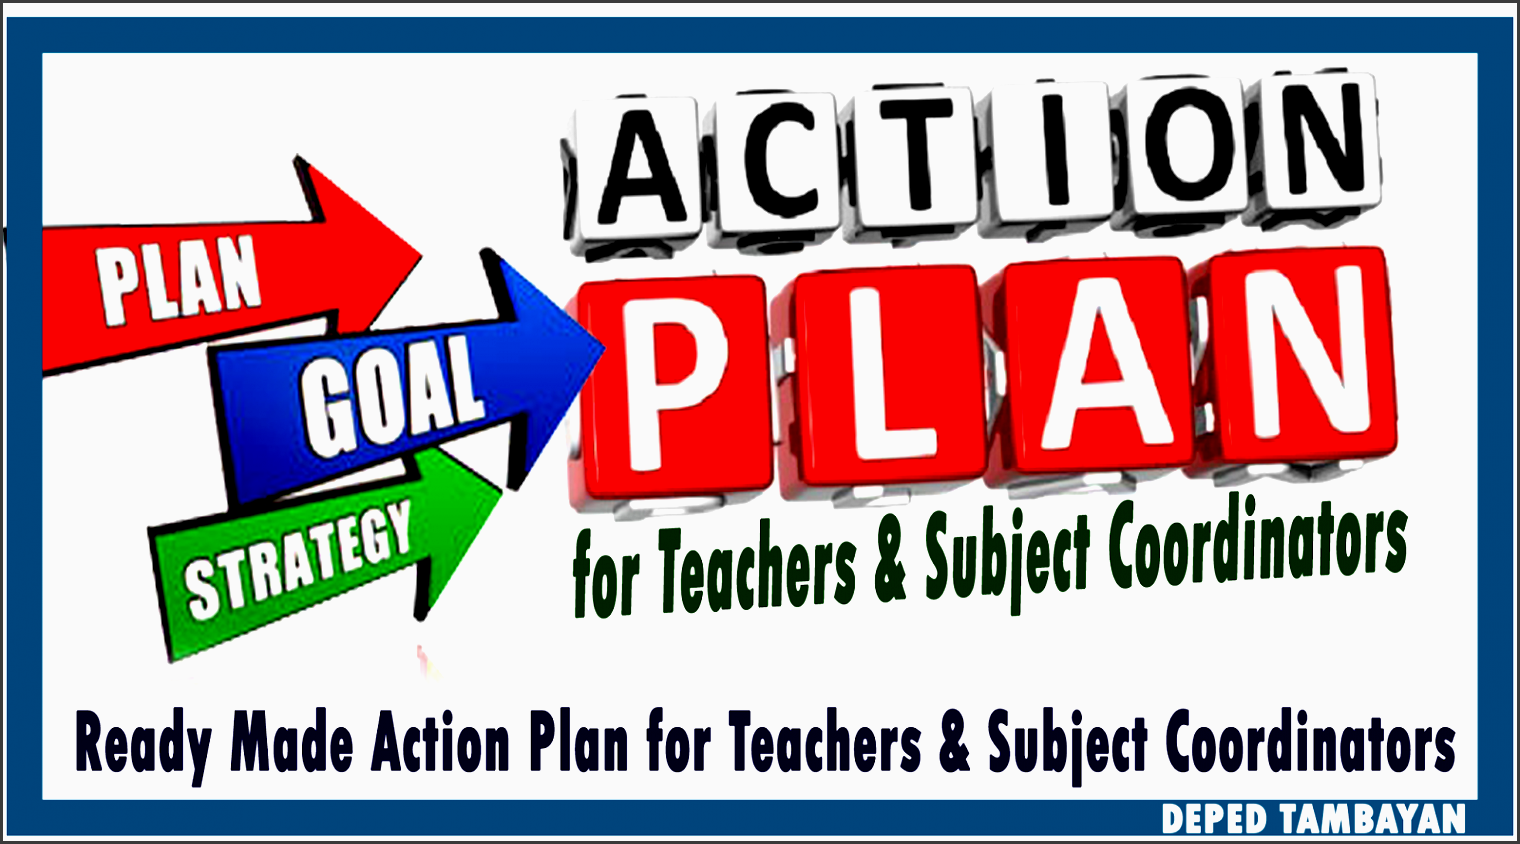 sample action plan for teachers and subject coordinators